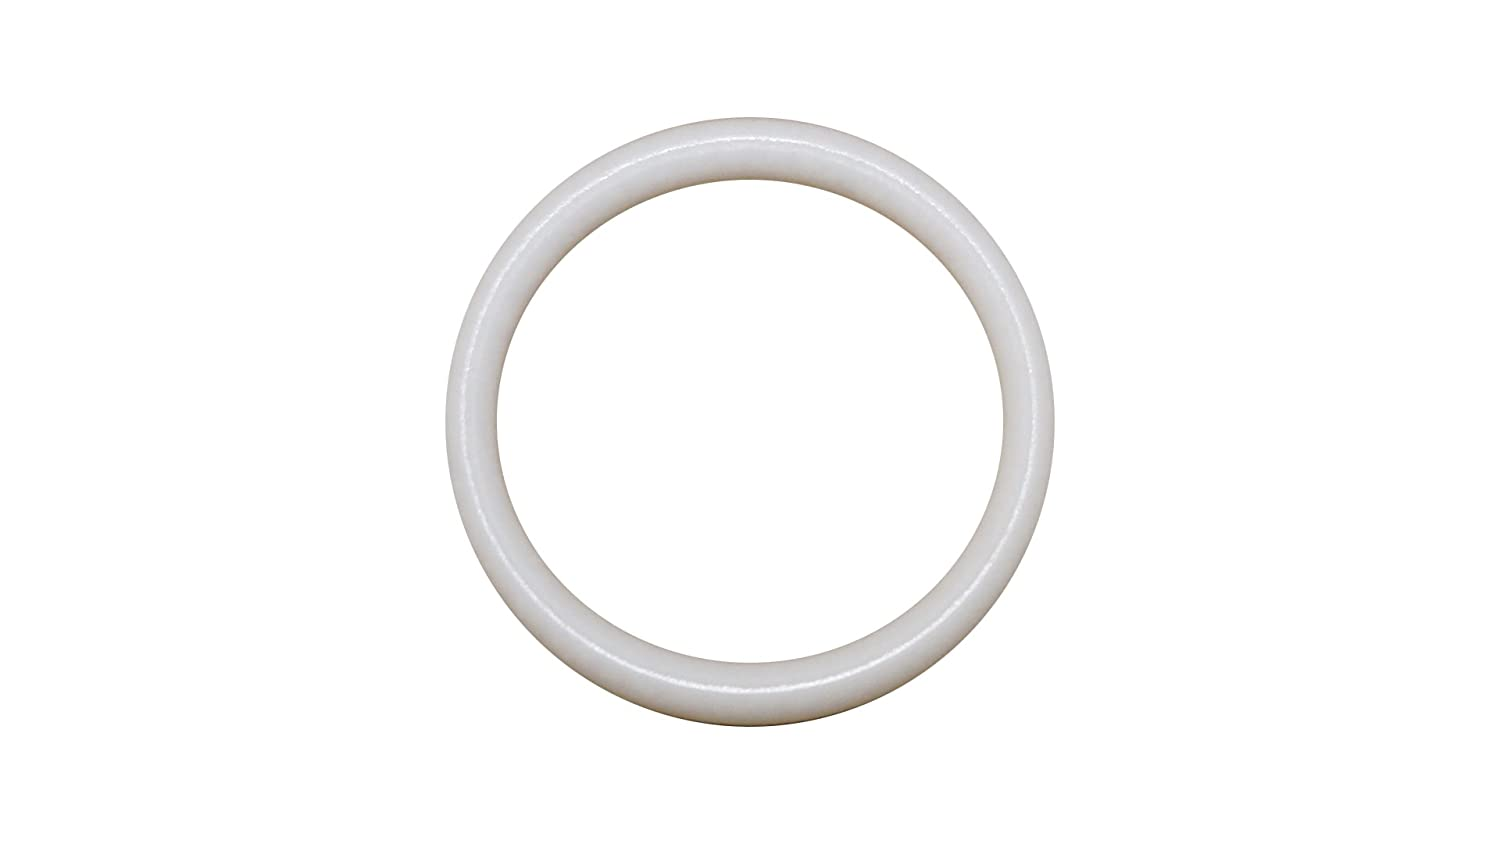 STCC ORTFE219 Number-219 Standard Teflon O-Ring 1-5//16 ID Polytetrafluoro-Ethylene Sterling Seal and Supply Outstanding Weather Resistance 1-9//16 OD 1-5//16 ID 1-9//16 OD Sur-Seal